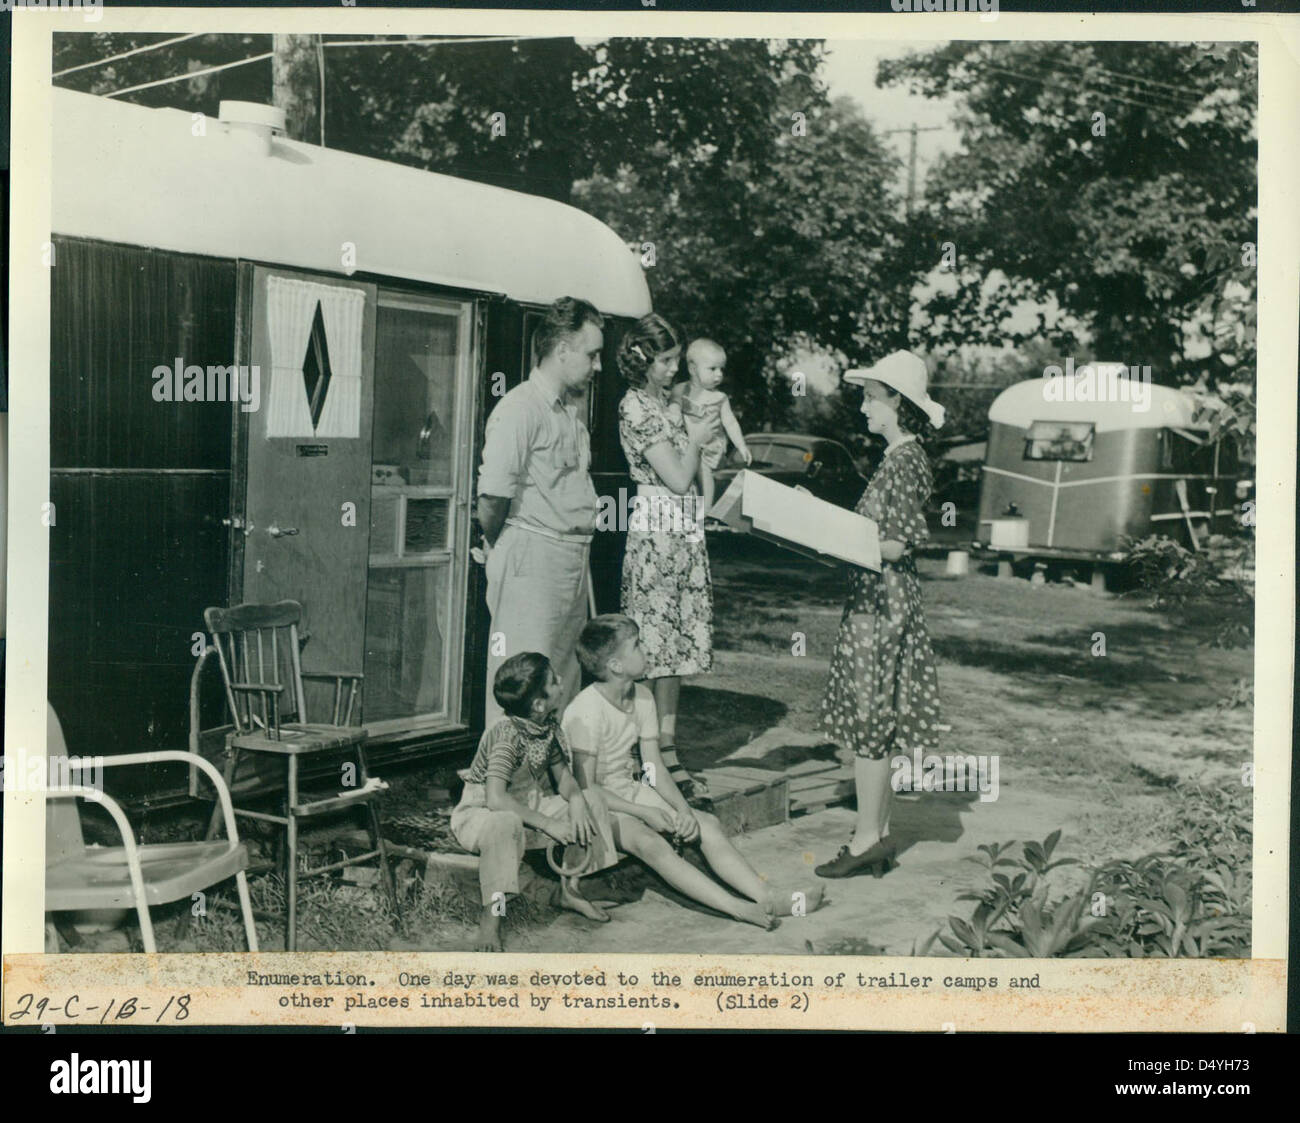 Enumeration, One Day was Devoted to the Enumeration of Trailer Camps and Other Places Inhabited by Transients, 1940 - Stock Image